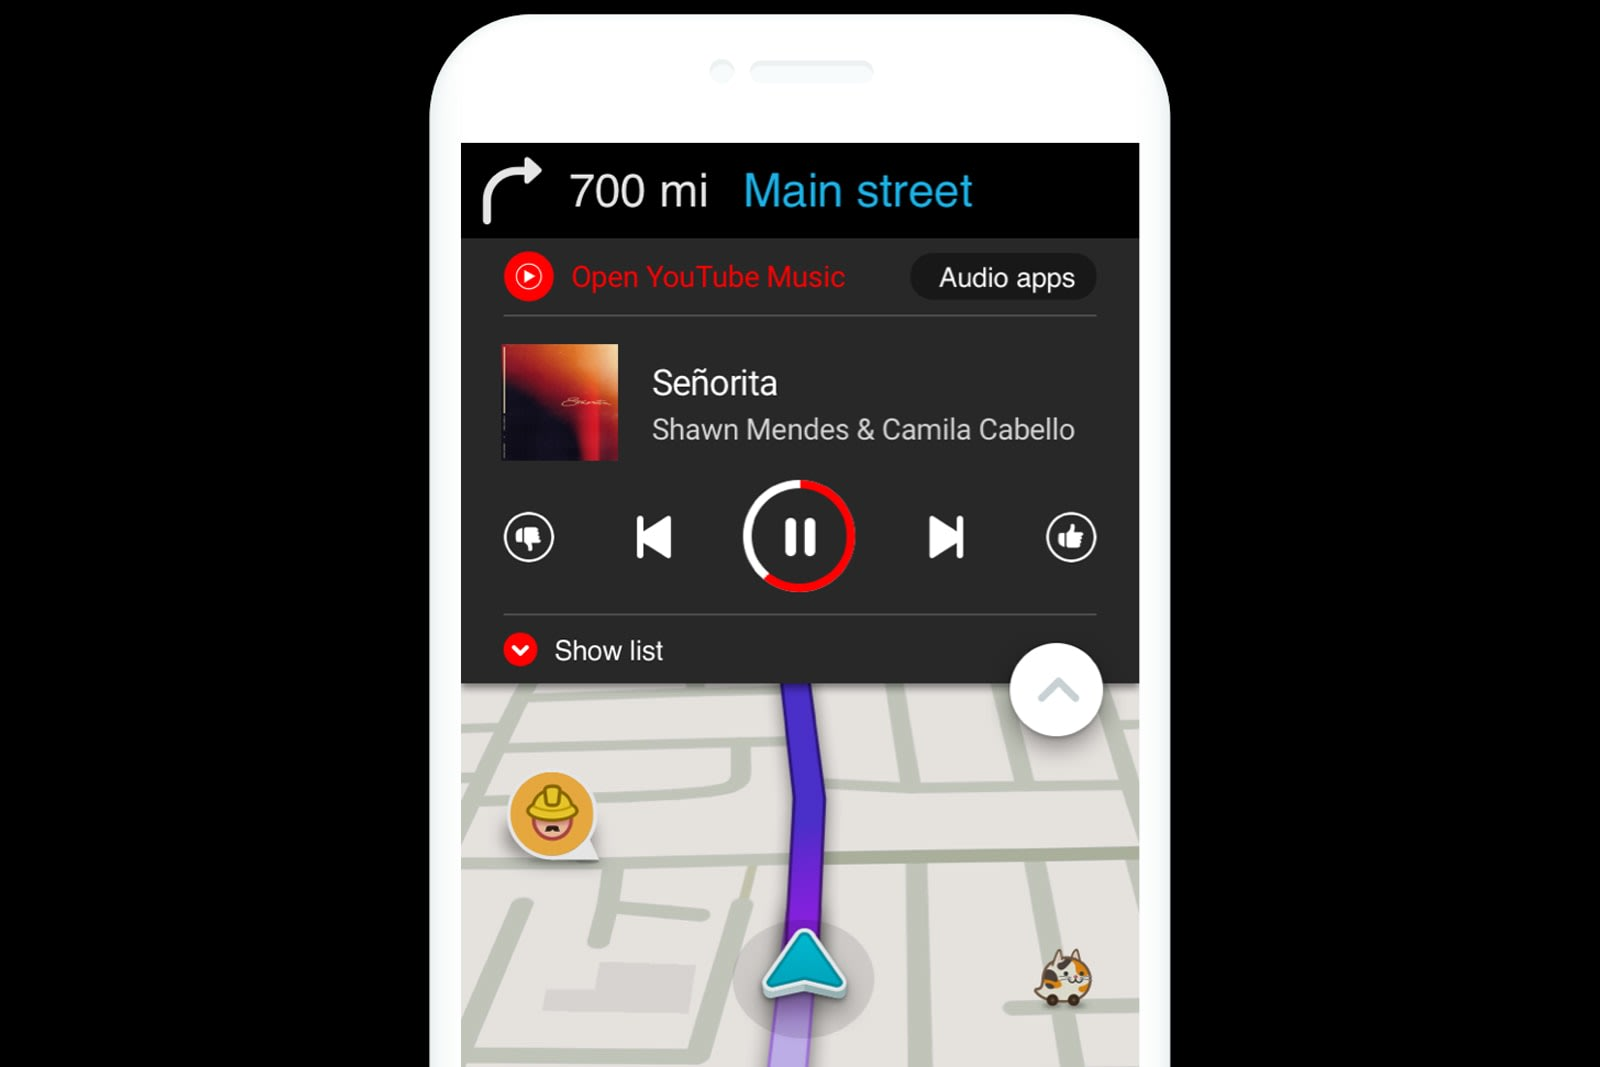 Waze adds easy access to YouTube Music while you drive